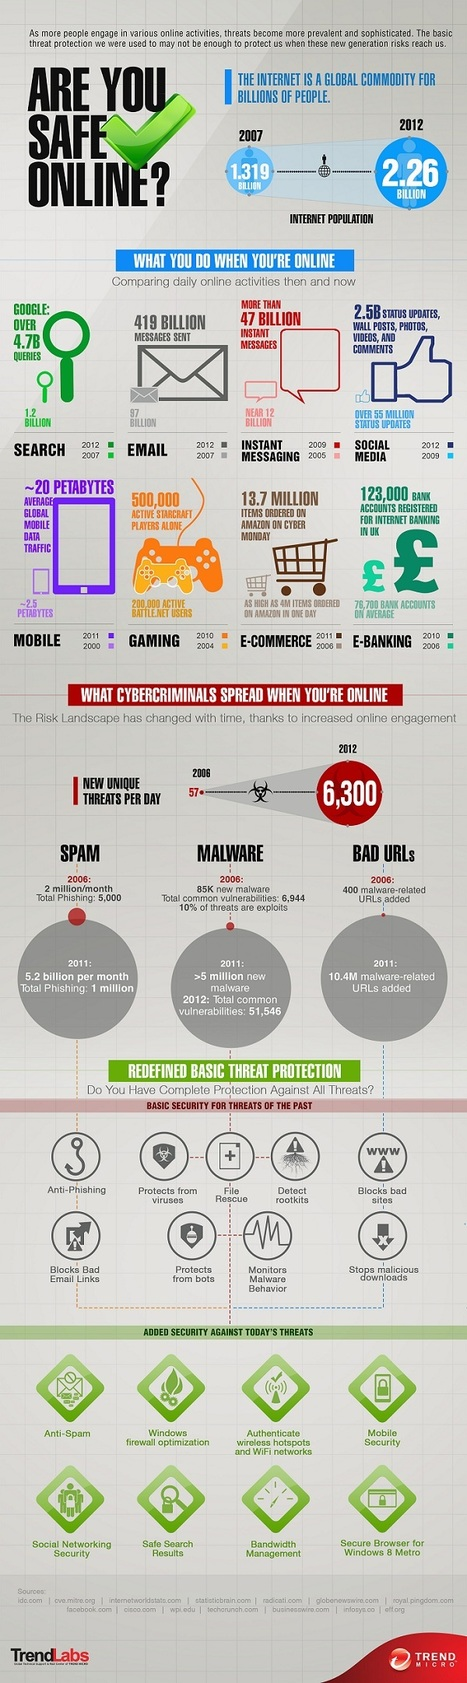 Are You Safe Online? [INFOGRAPHIC] | Aprendiendo a Distancia | Scoop.it